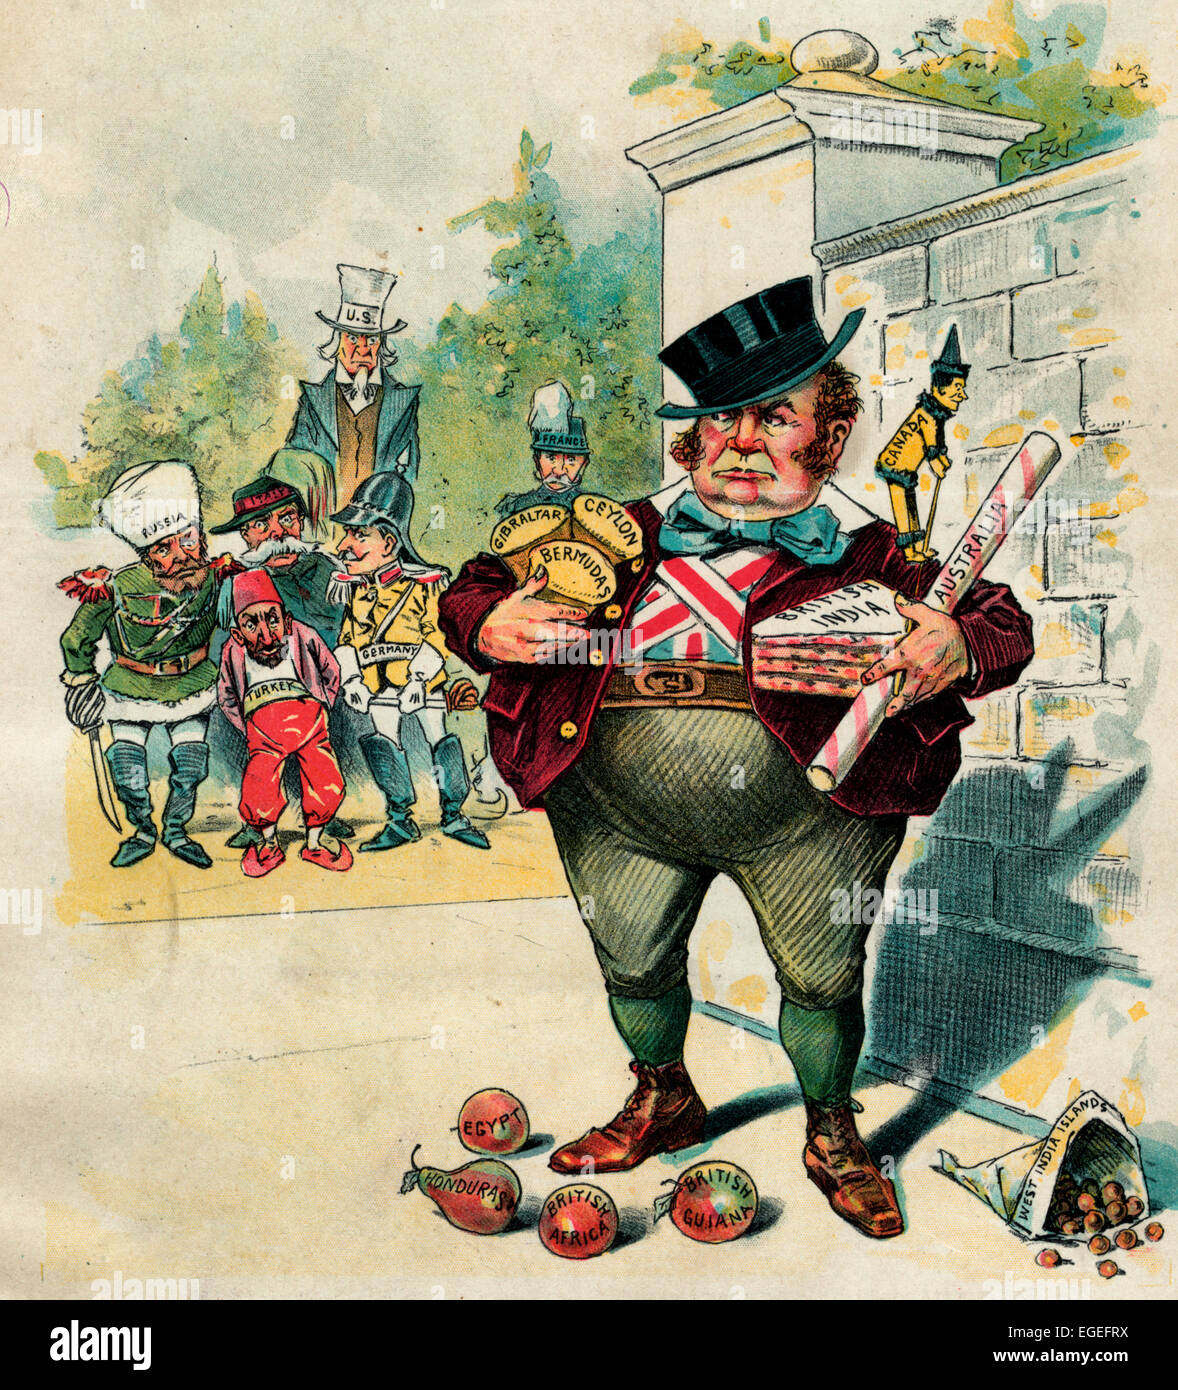 Greedy Johnnie - He has got a lot of good things - but how long can he keep them to himself. John Bull standing - Stock Image